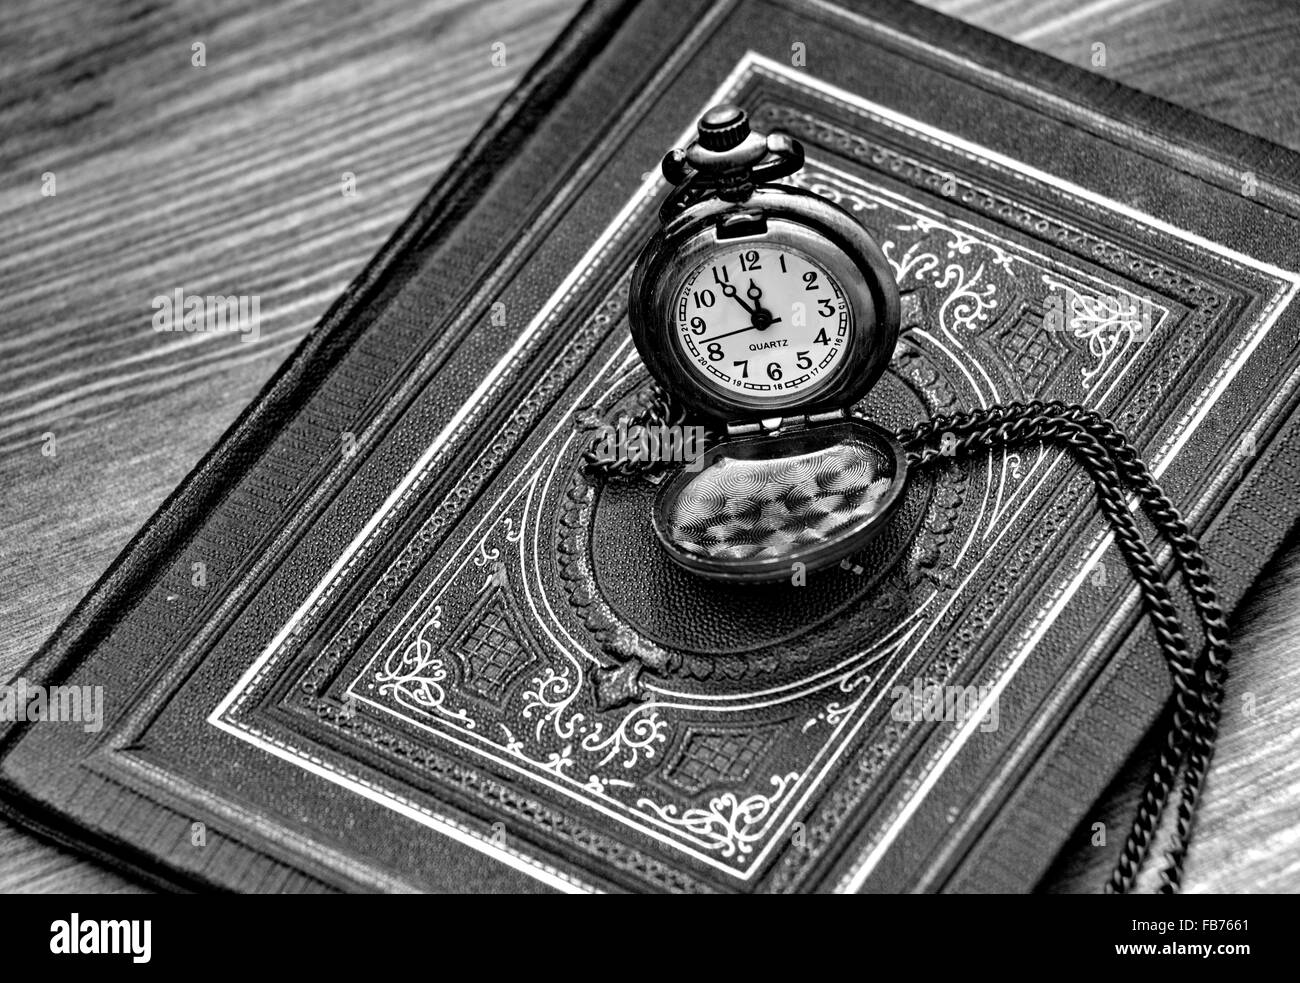 Retro pocket watch lying on the old book with ornaments in black and white